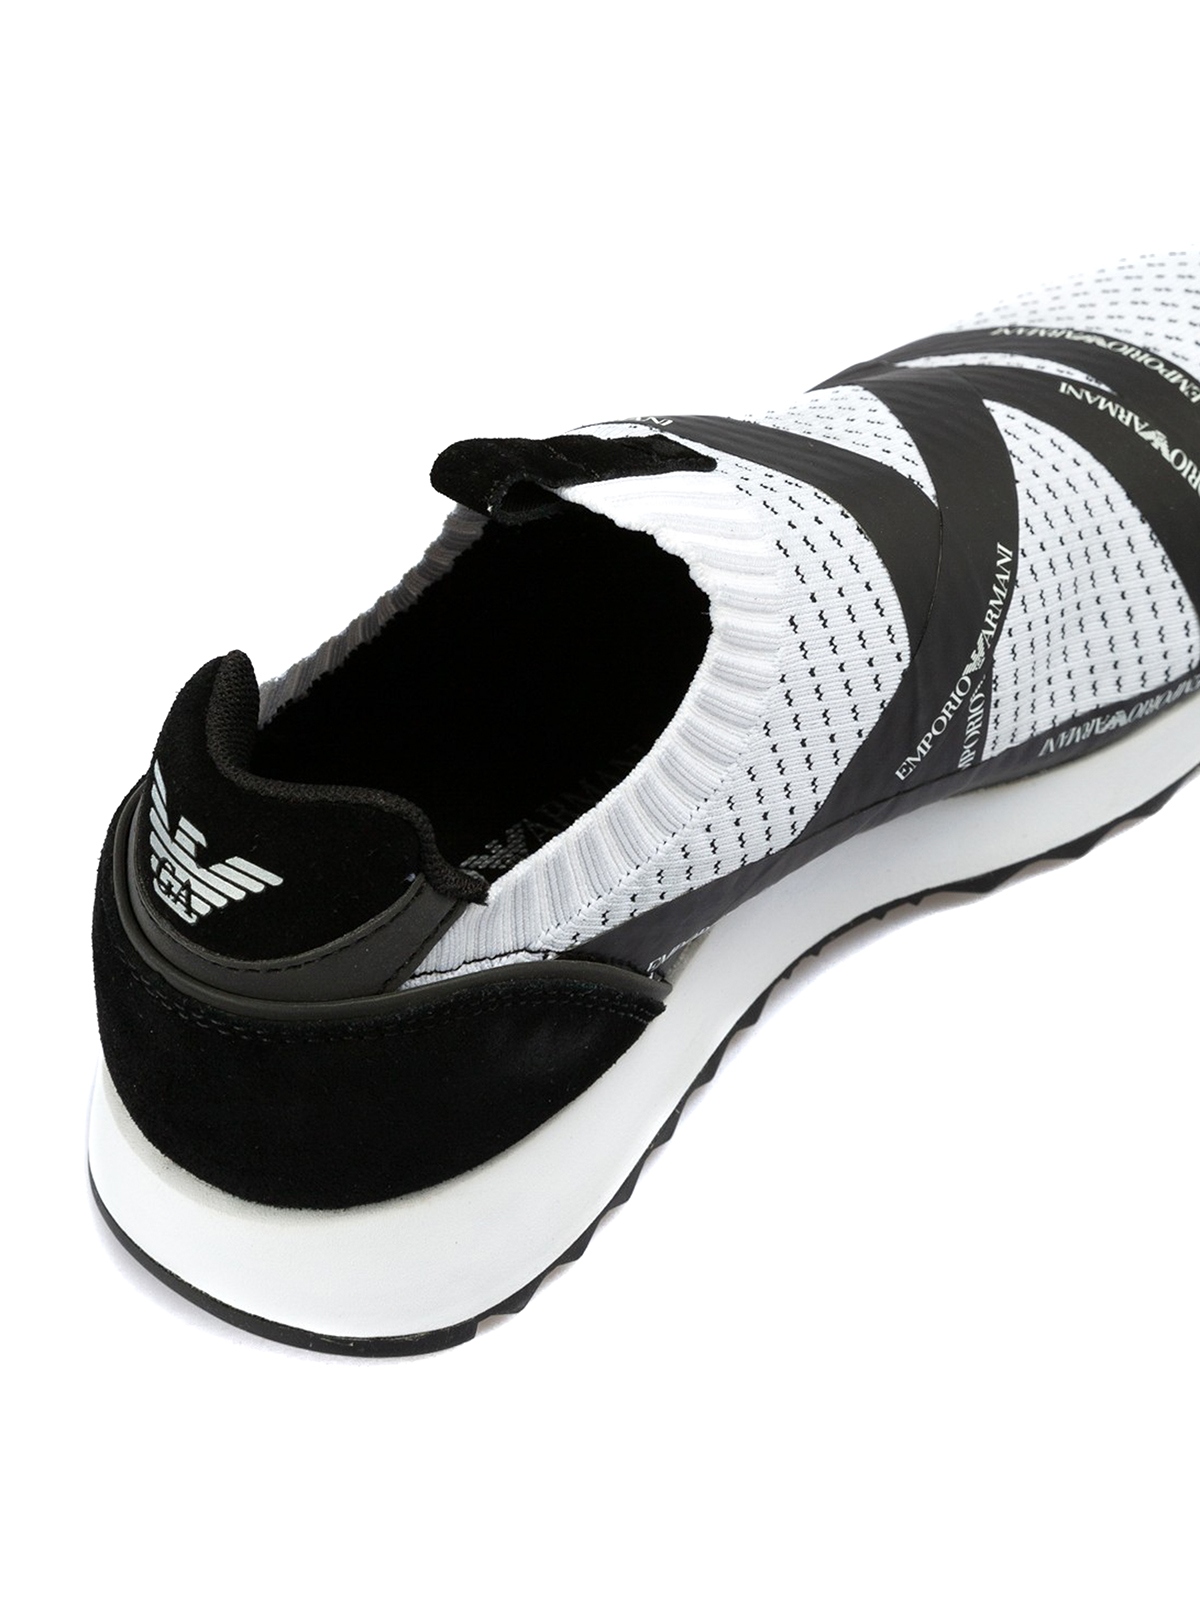 e745ecff Emporio Armani - Slip on stretch tech fabric sneakers - trainers ...